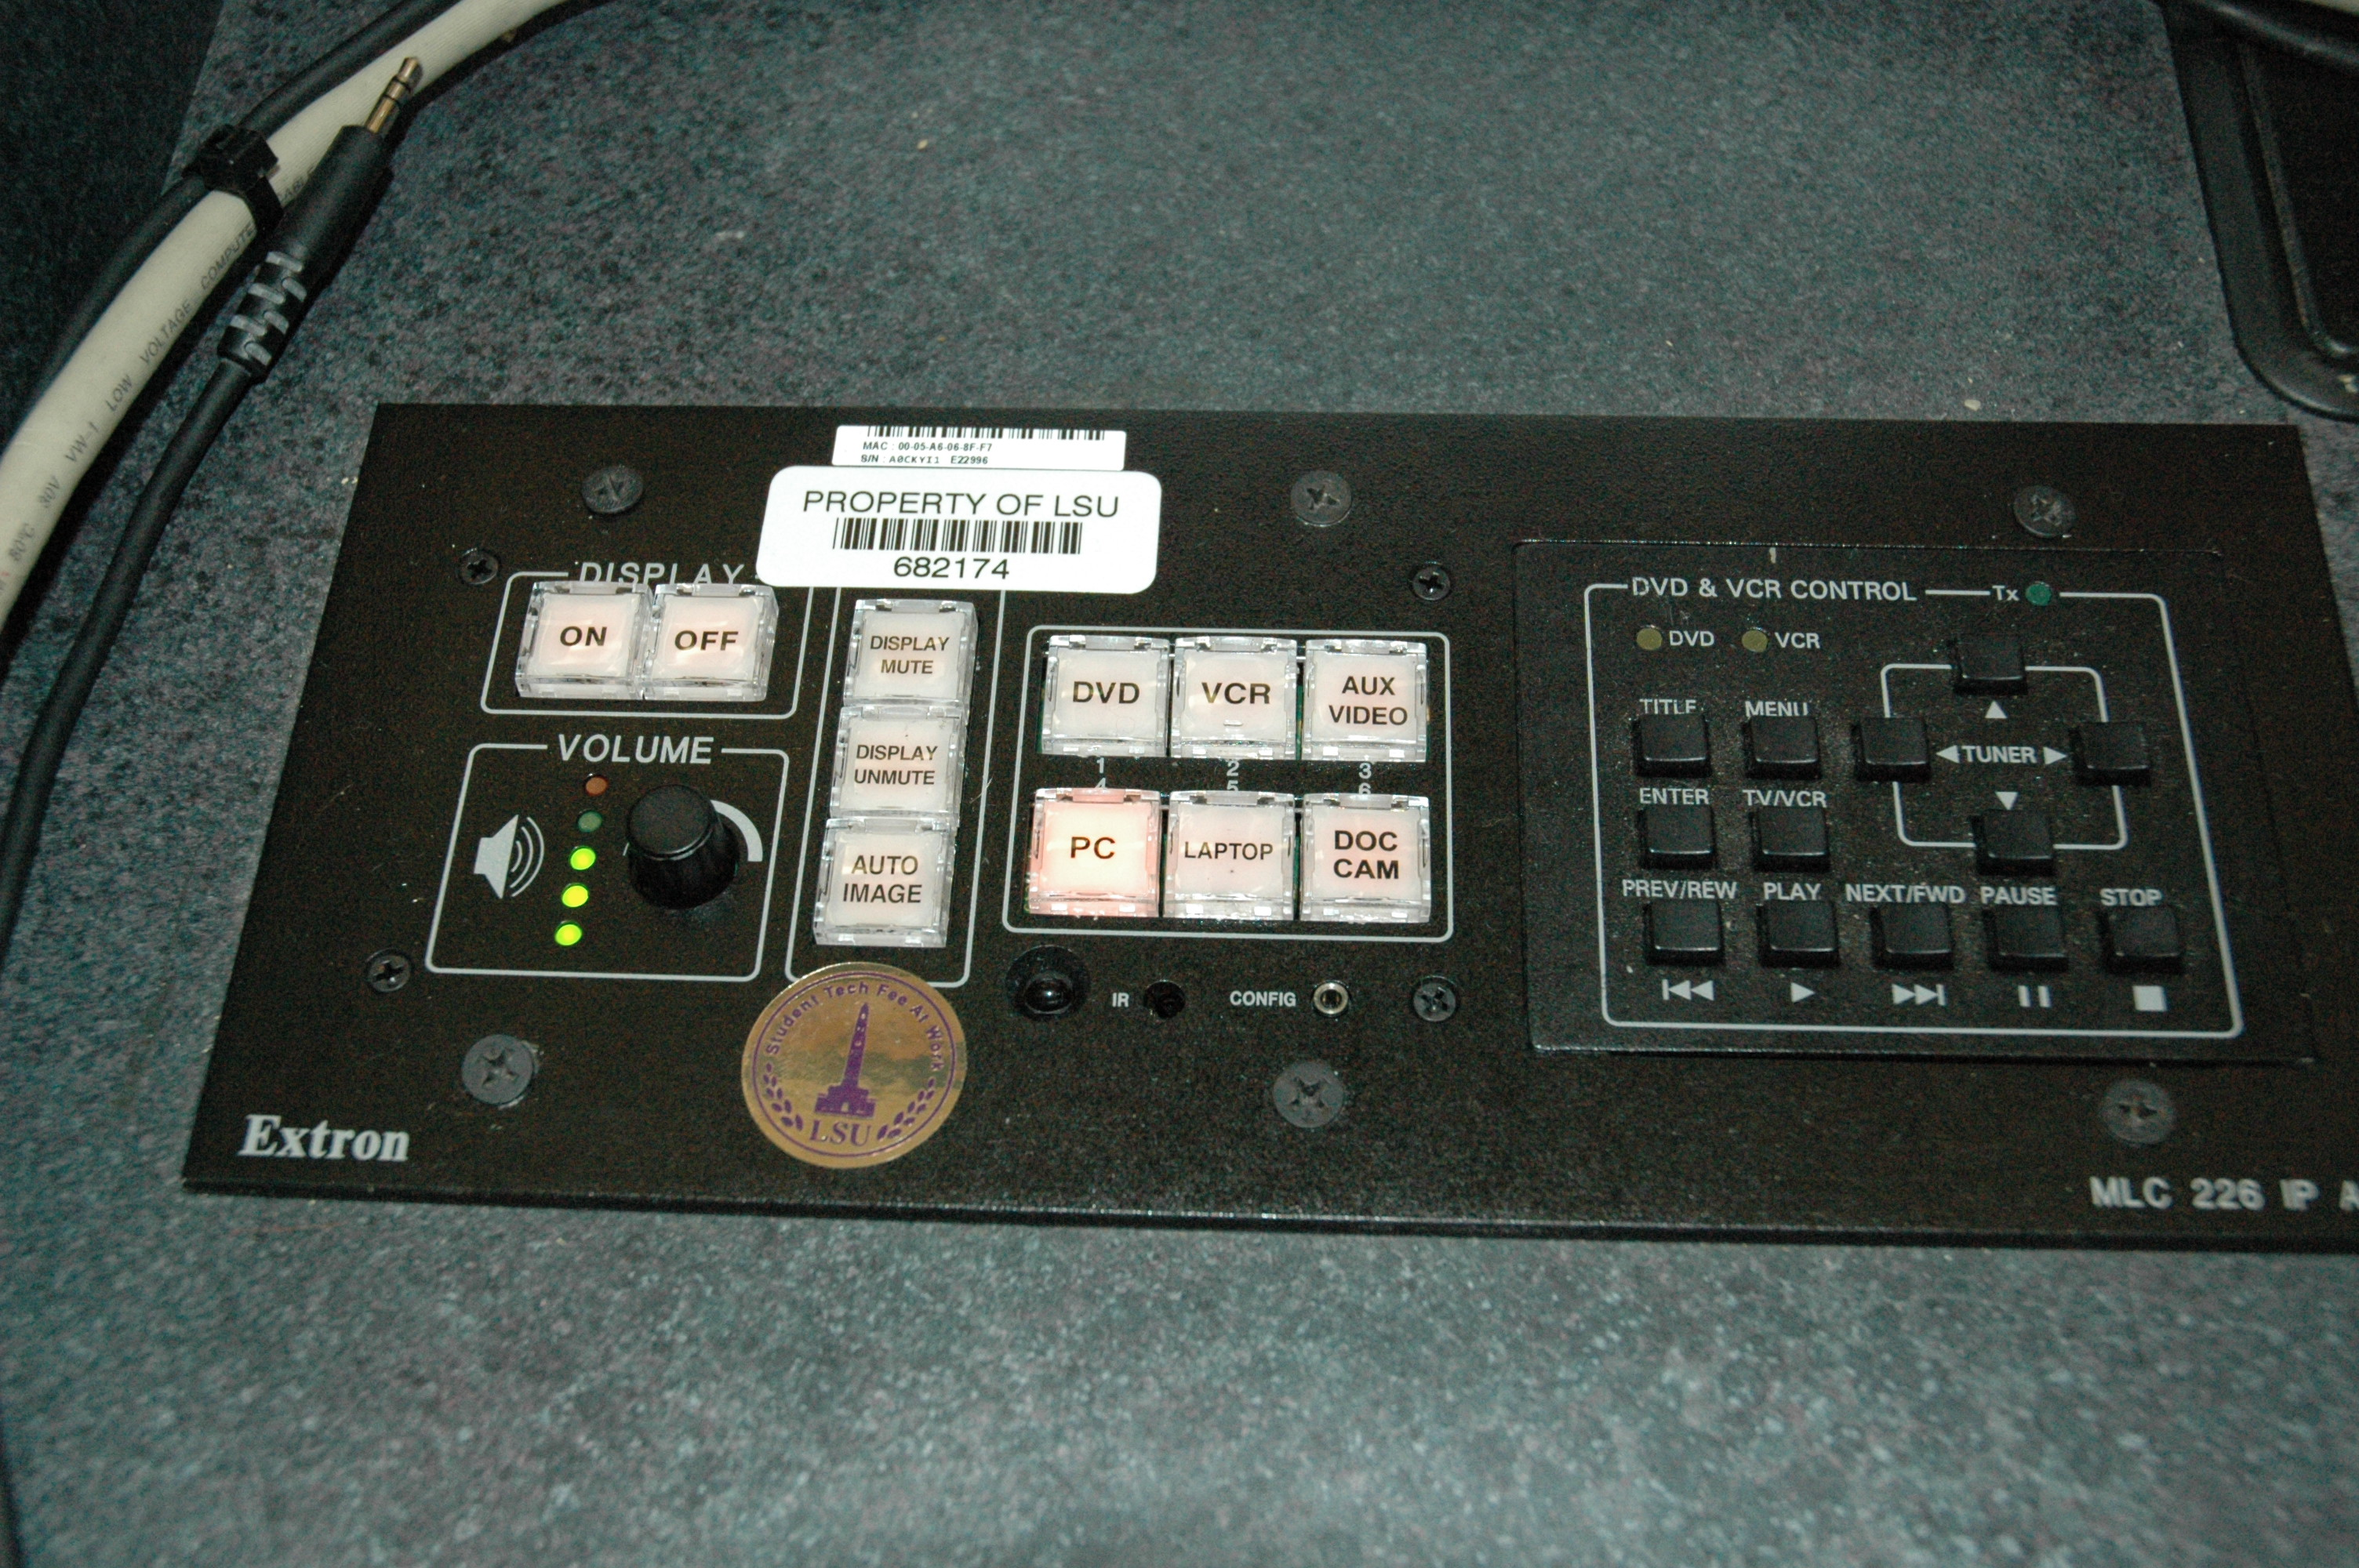 Close Up of controls on Multimedia Station